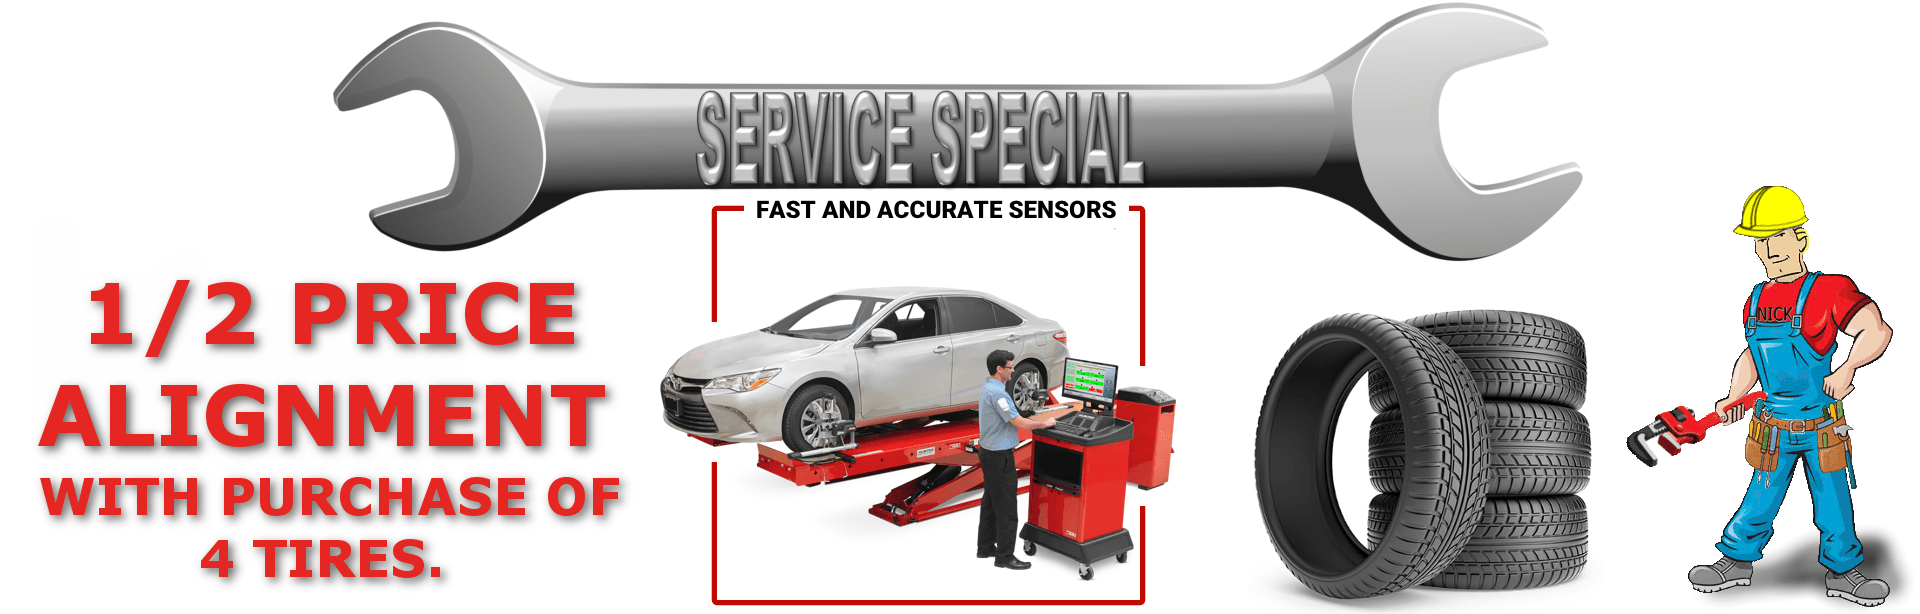 Nissan Dealership Topeka Ks Used Cars Capital City Of 06 Hhr Fuel Filter Replacement Service Special